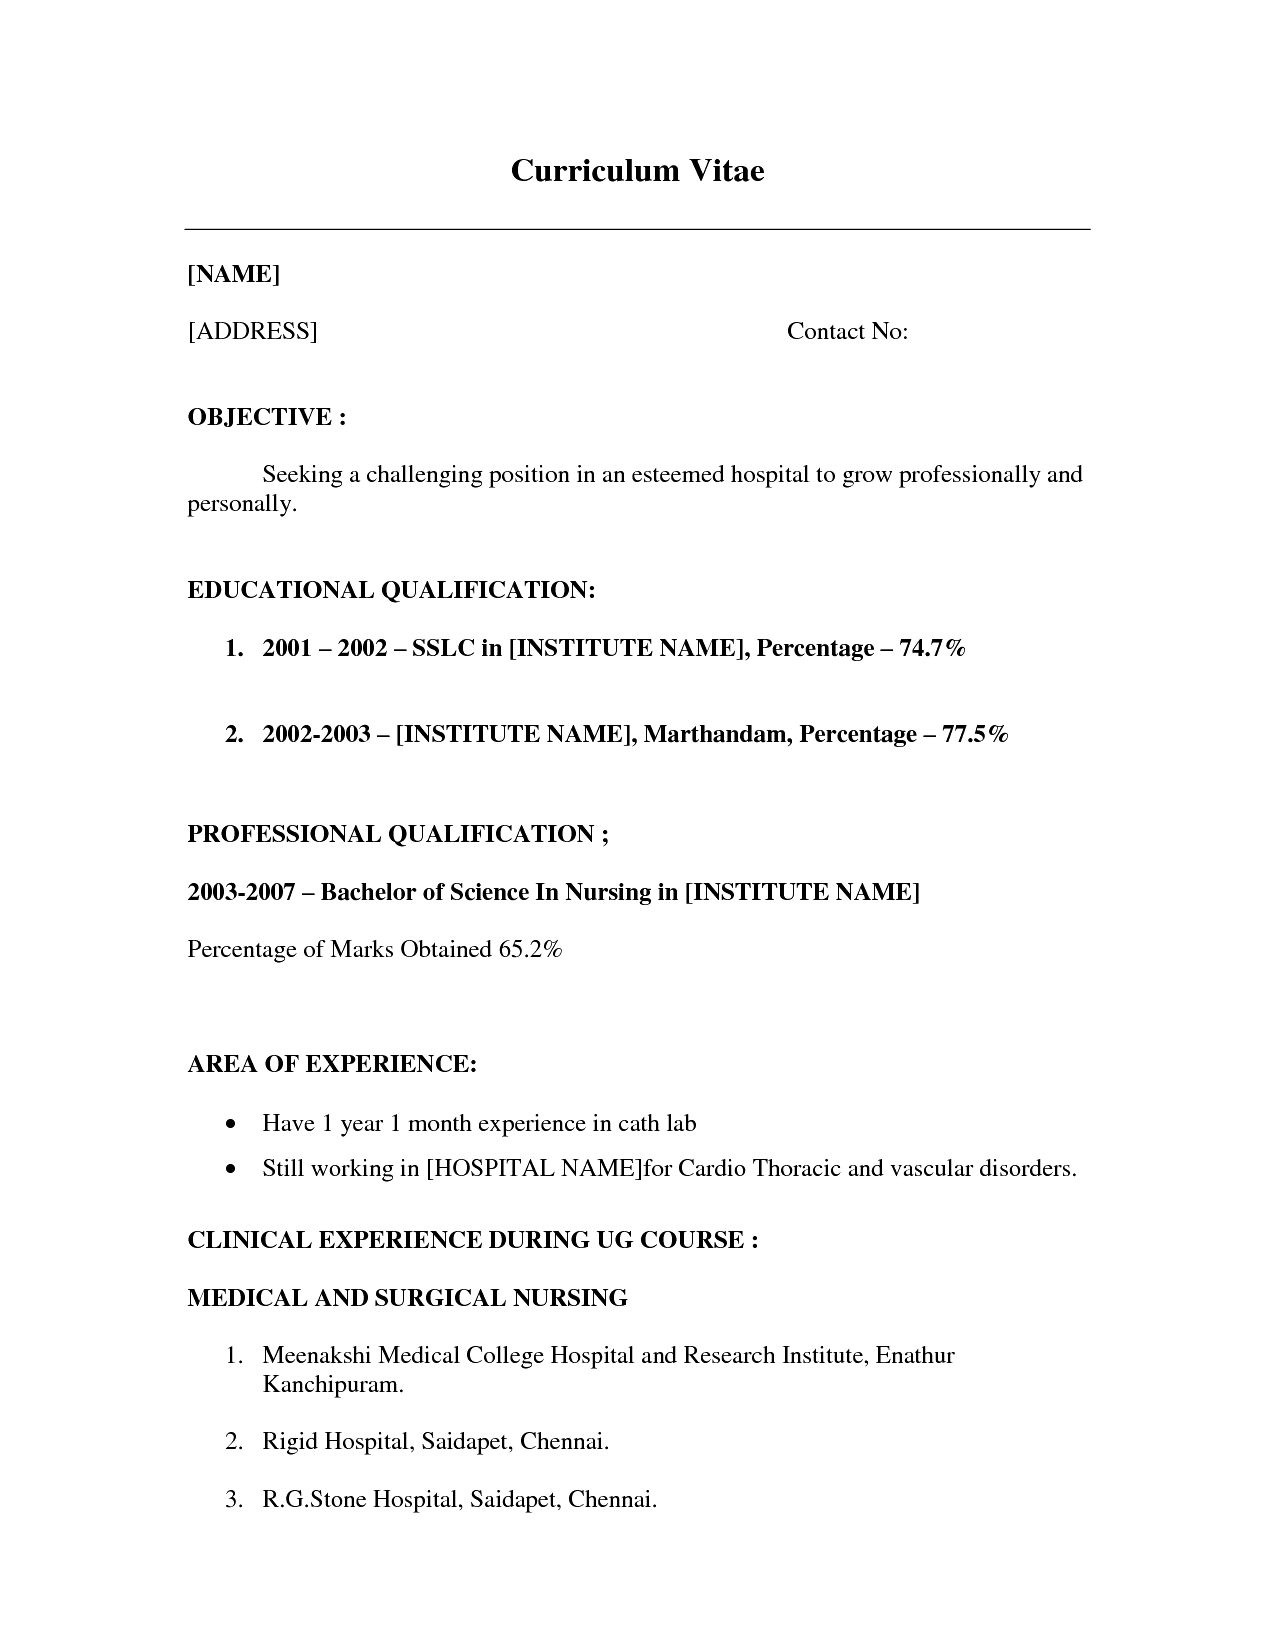 Sample Cover Letter For High School Student With No Work Experience Cover Letters Mogenk Paper Grea Job Resume Examples Job Resume Samples Resume Examples